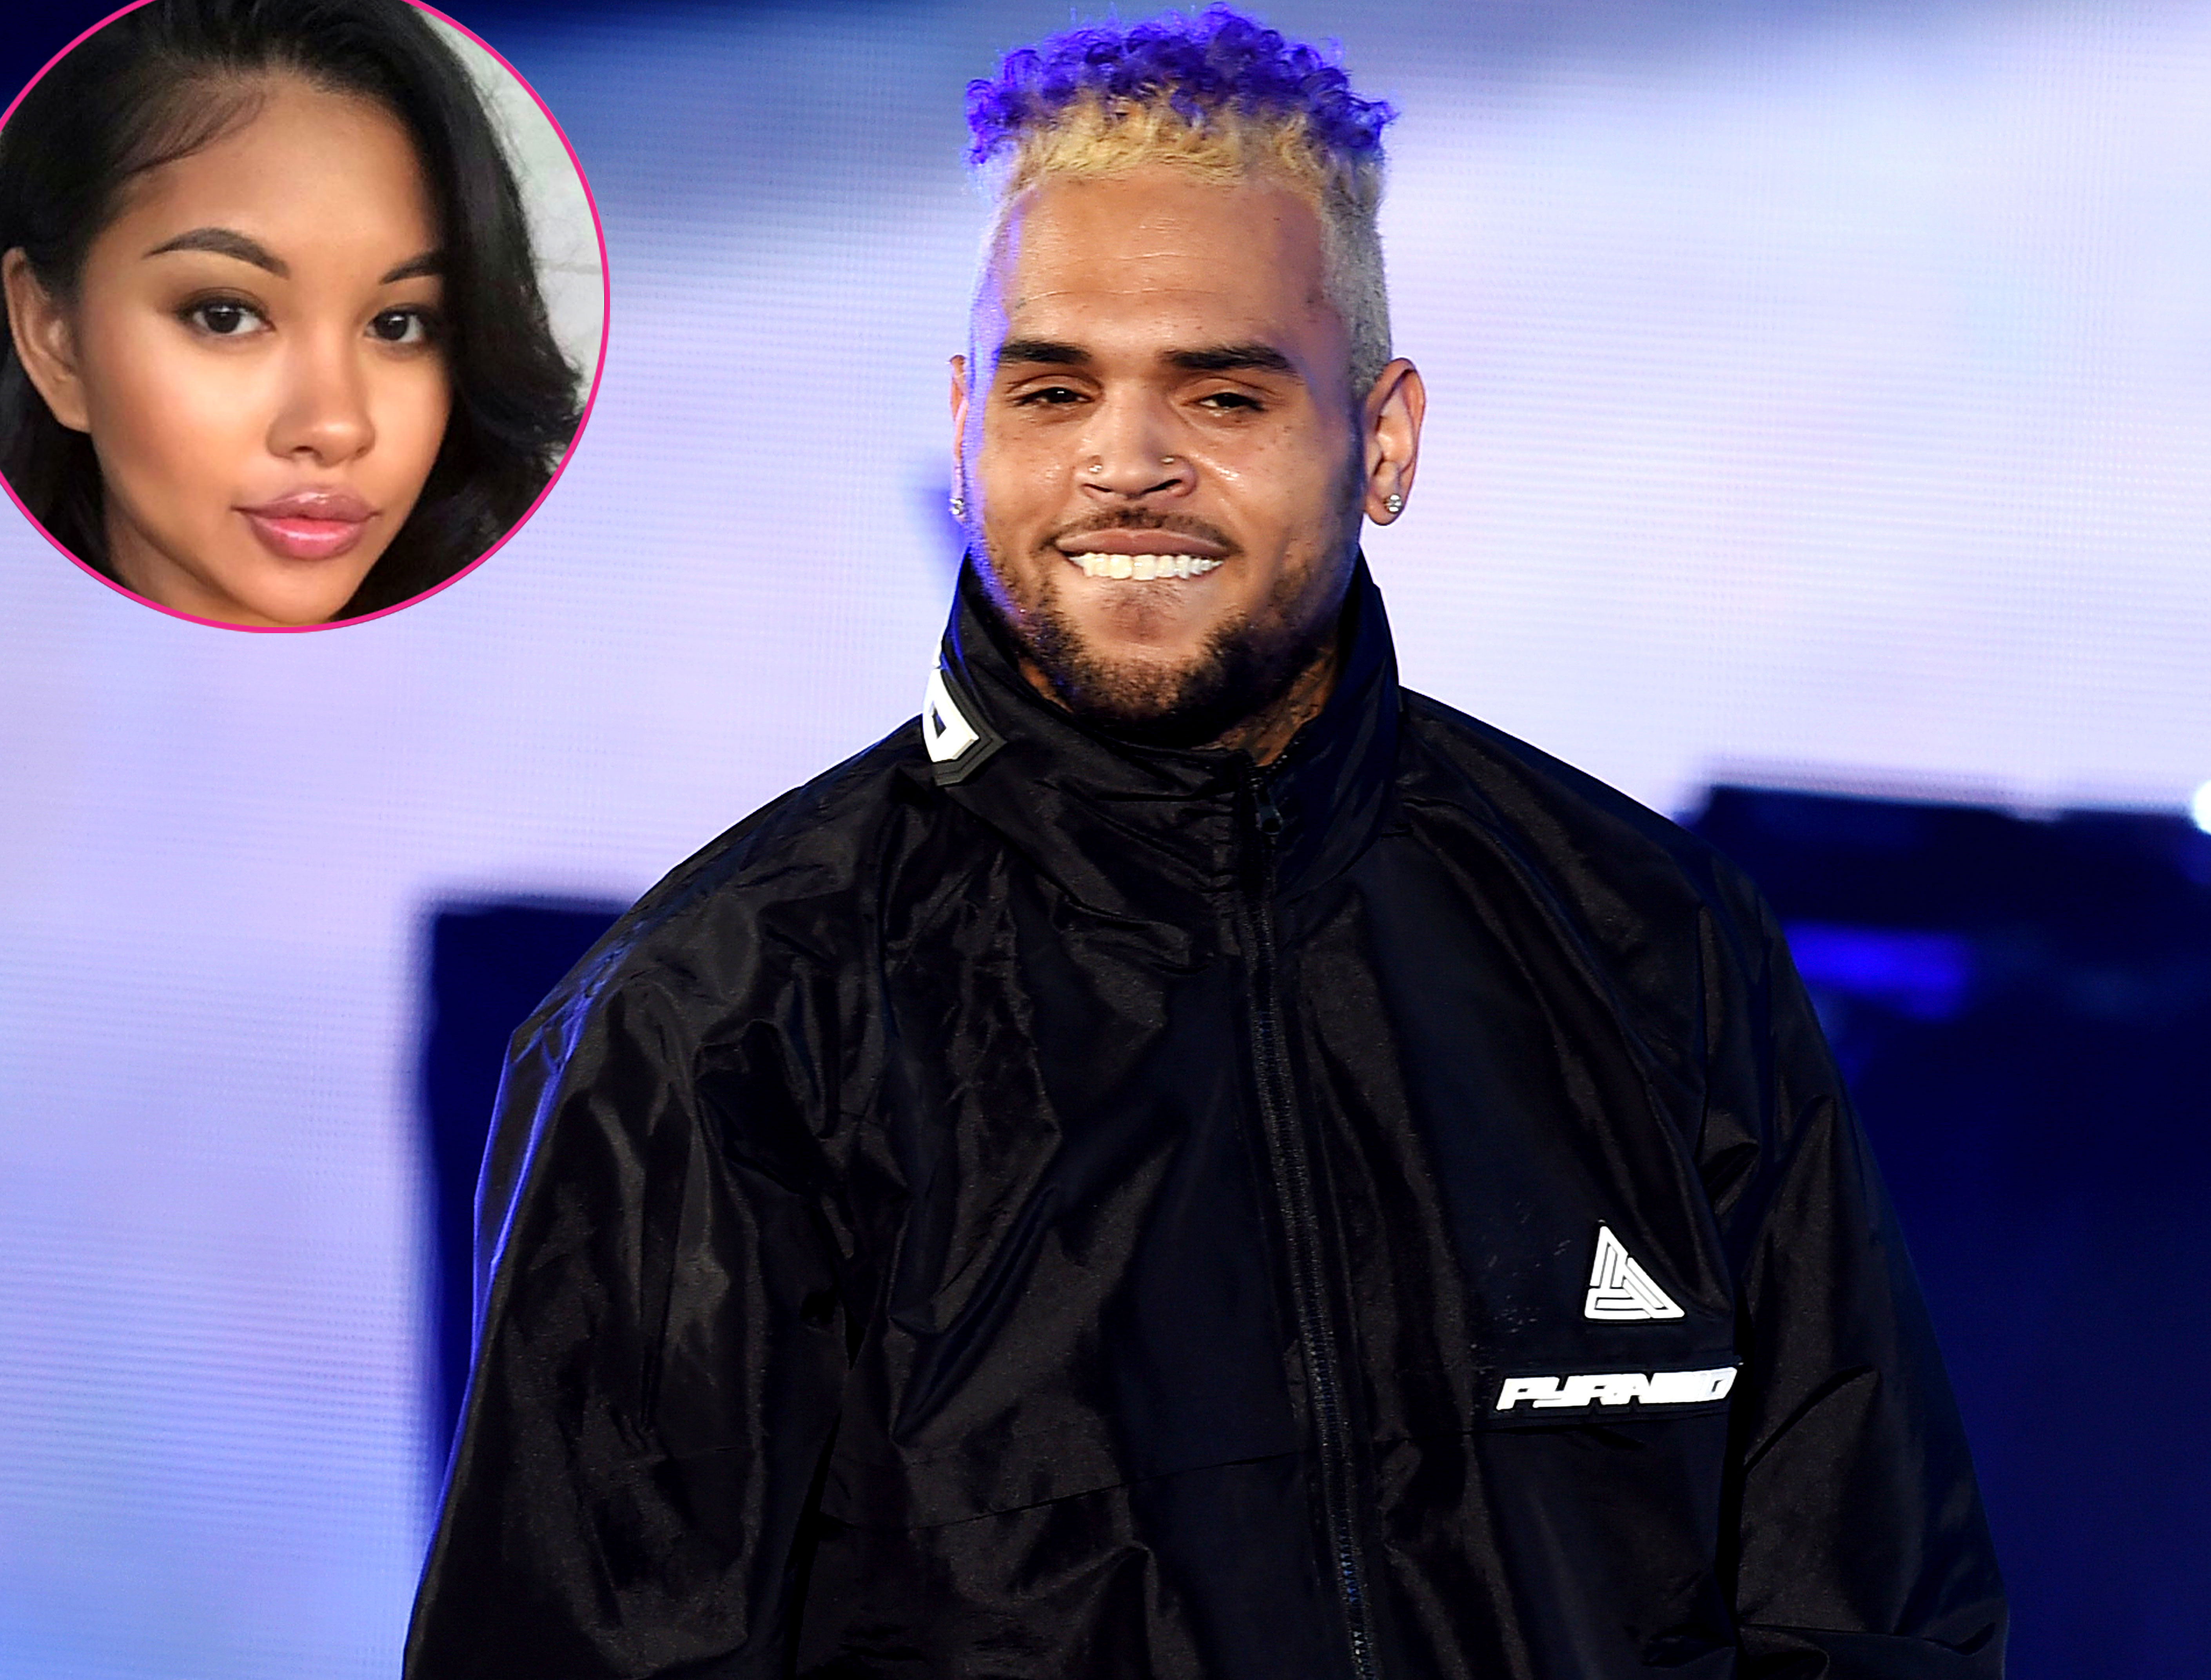 Chris Brown Expecting 2nd Baby With Ex-Girlfriend Ammika Harris